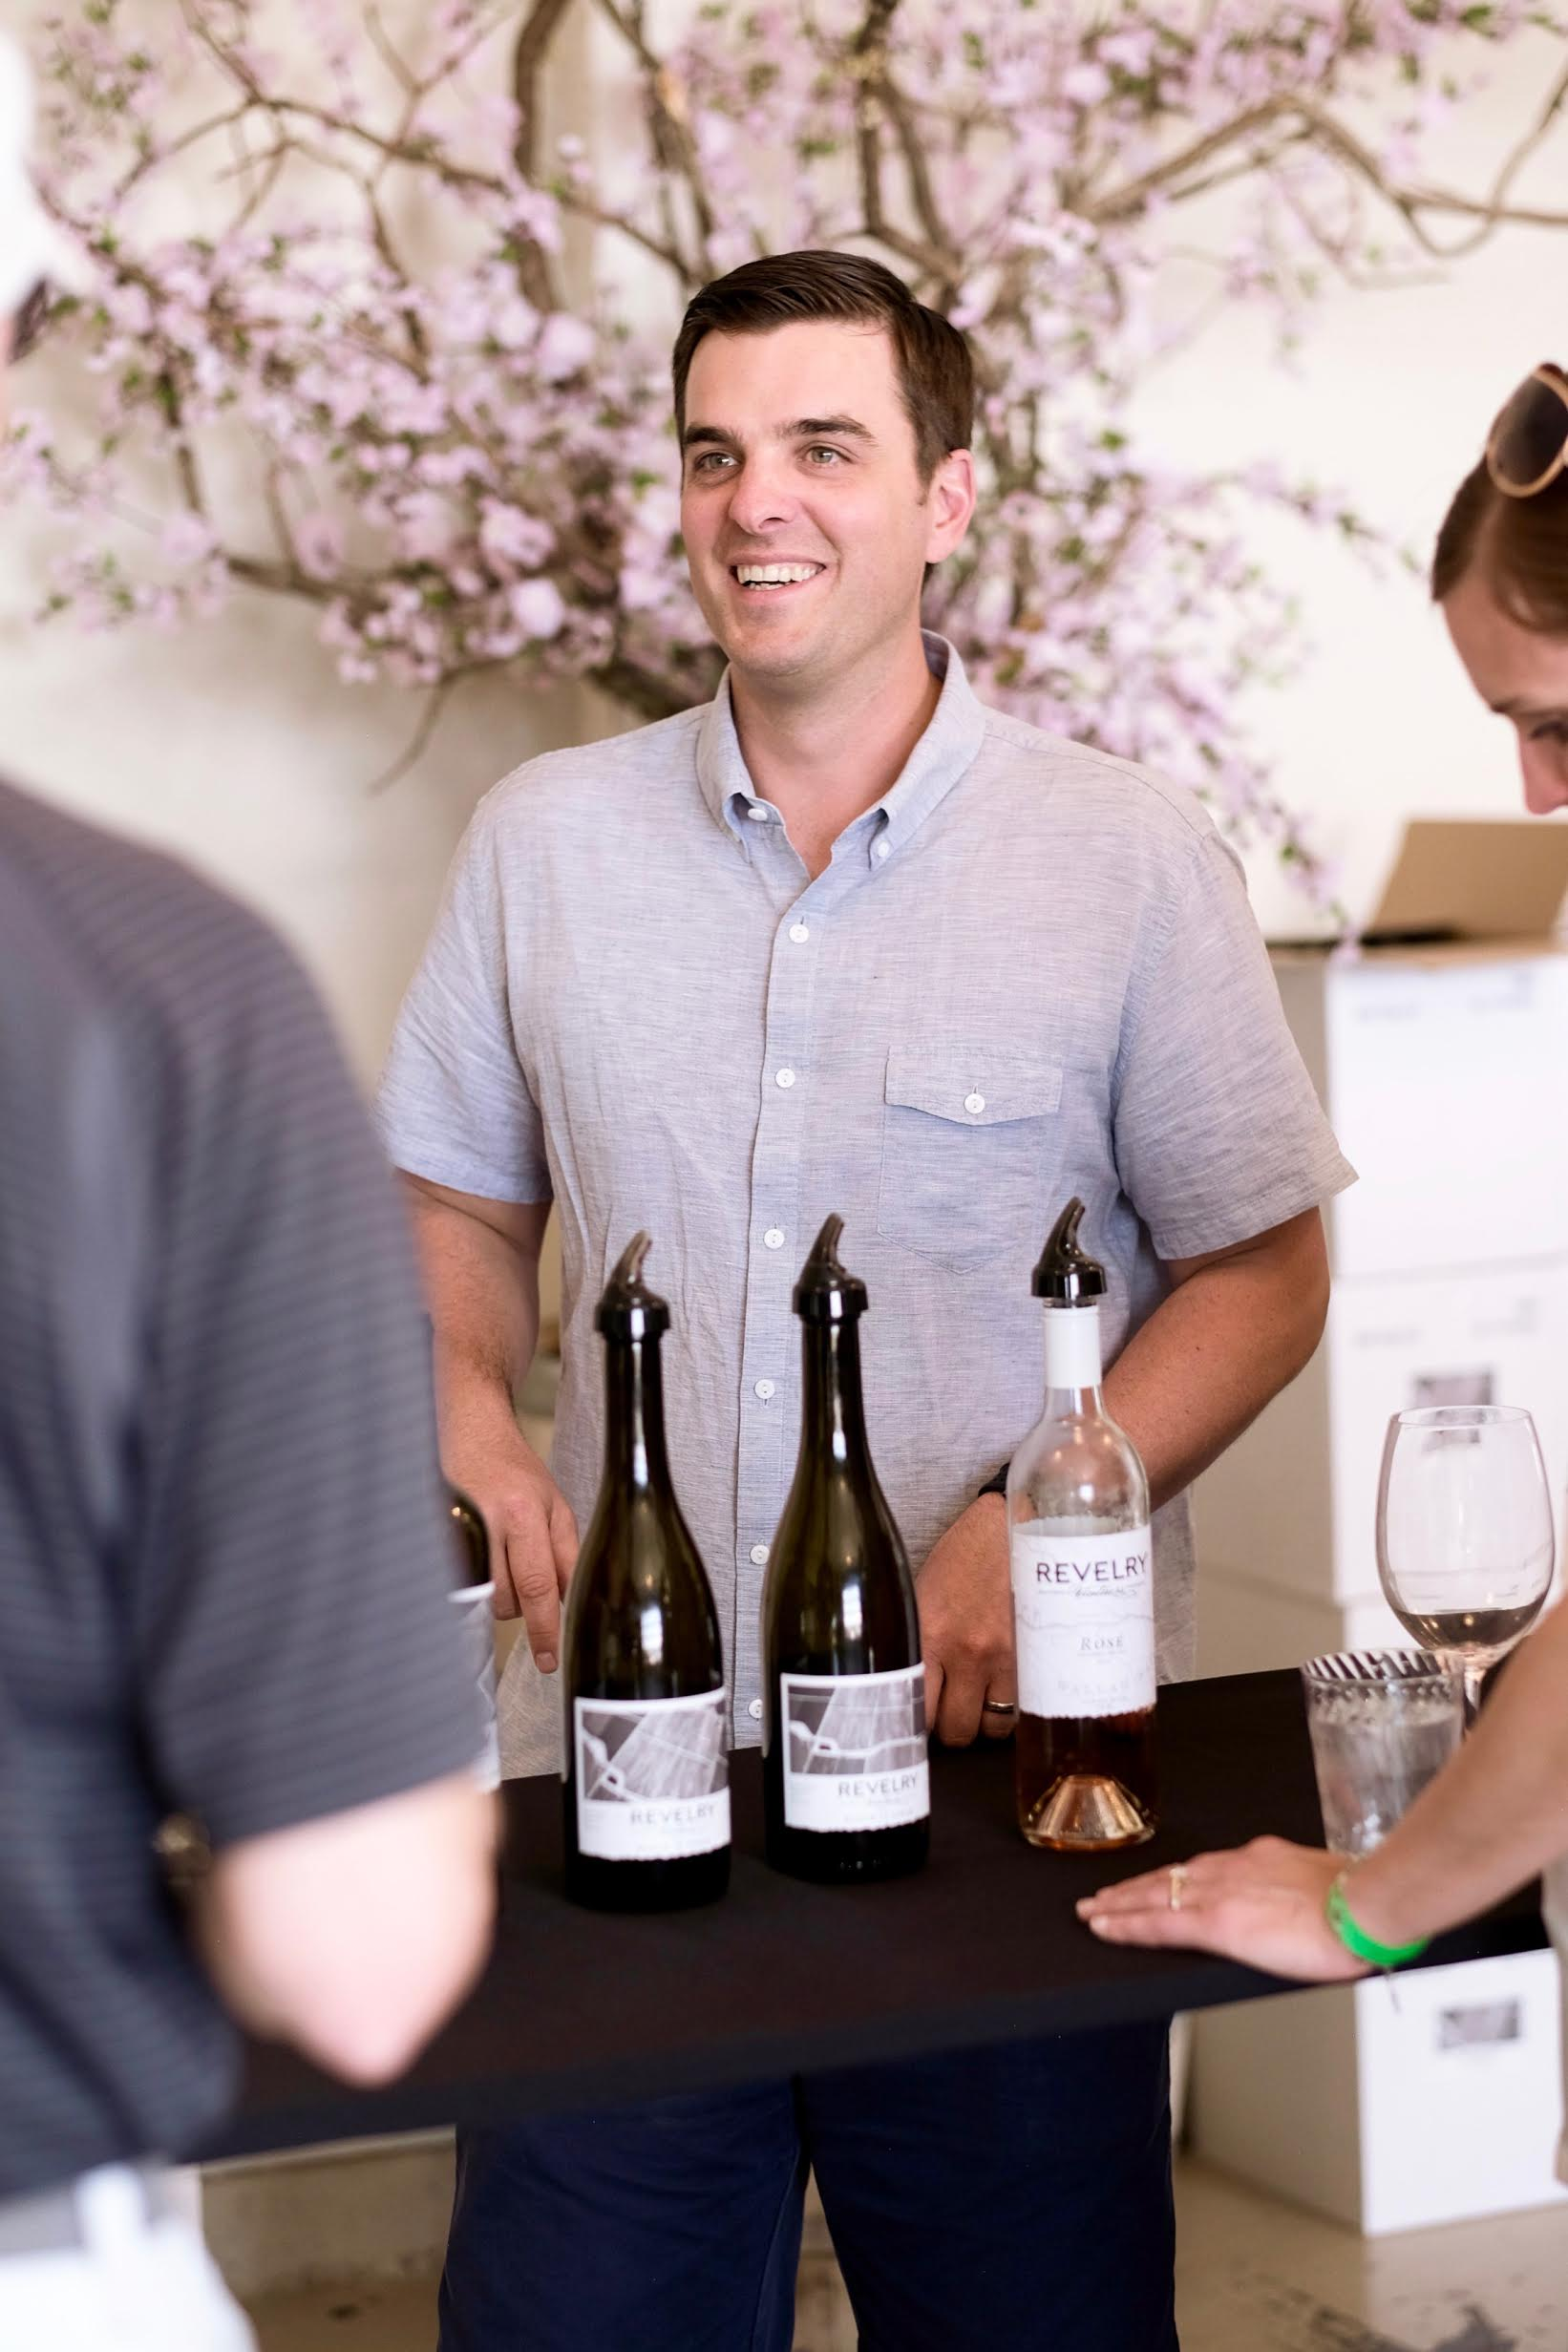 Jared Burns pours some of his fantastic wine at one of his wine events at Revelry Vintners